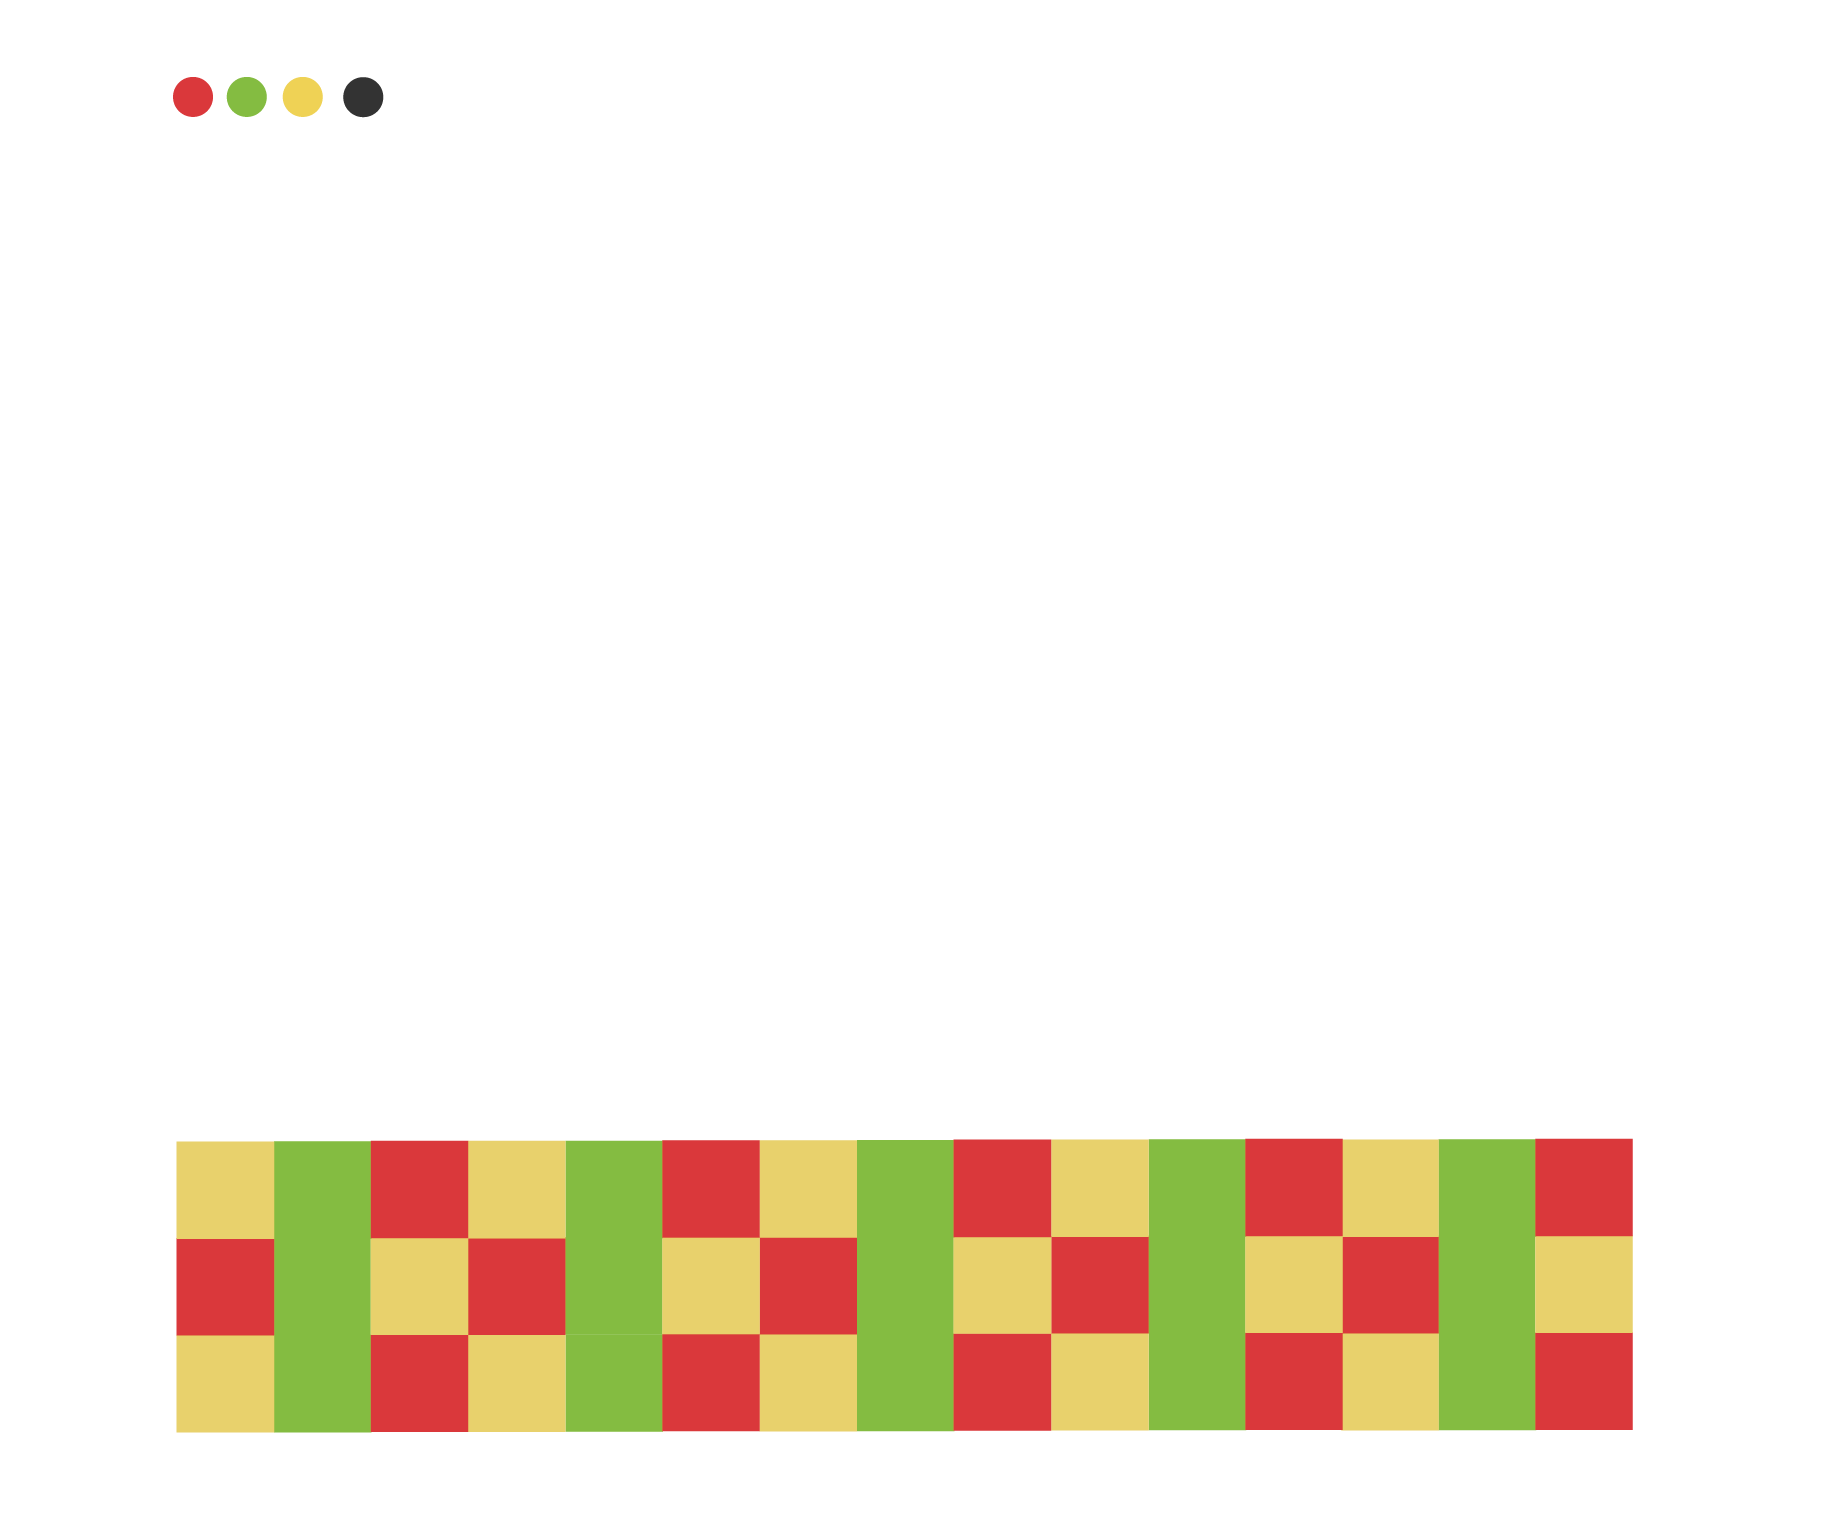 The Colour Pallet, font choices and graphic elements for the Dana's Brand